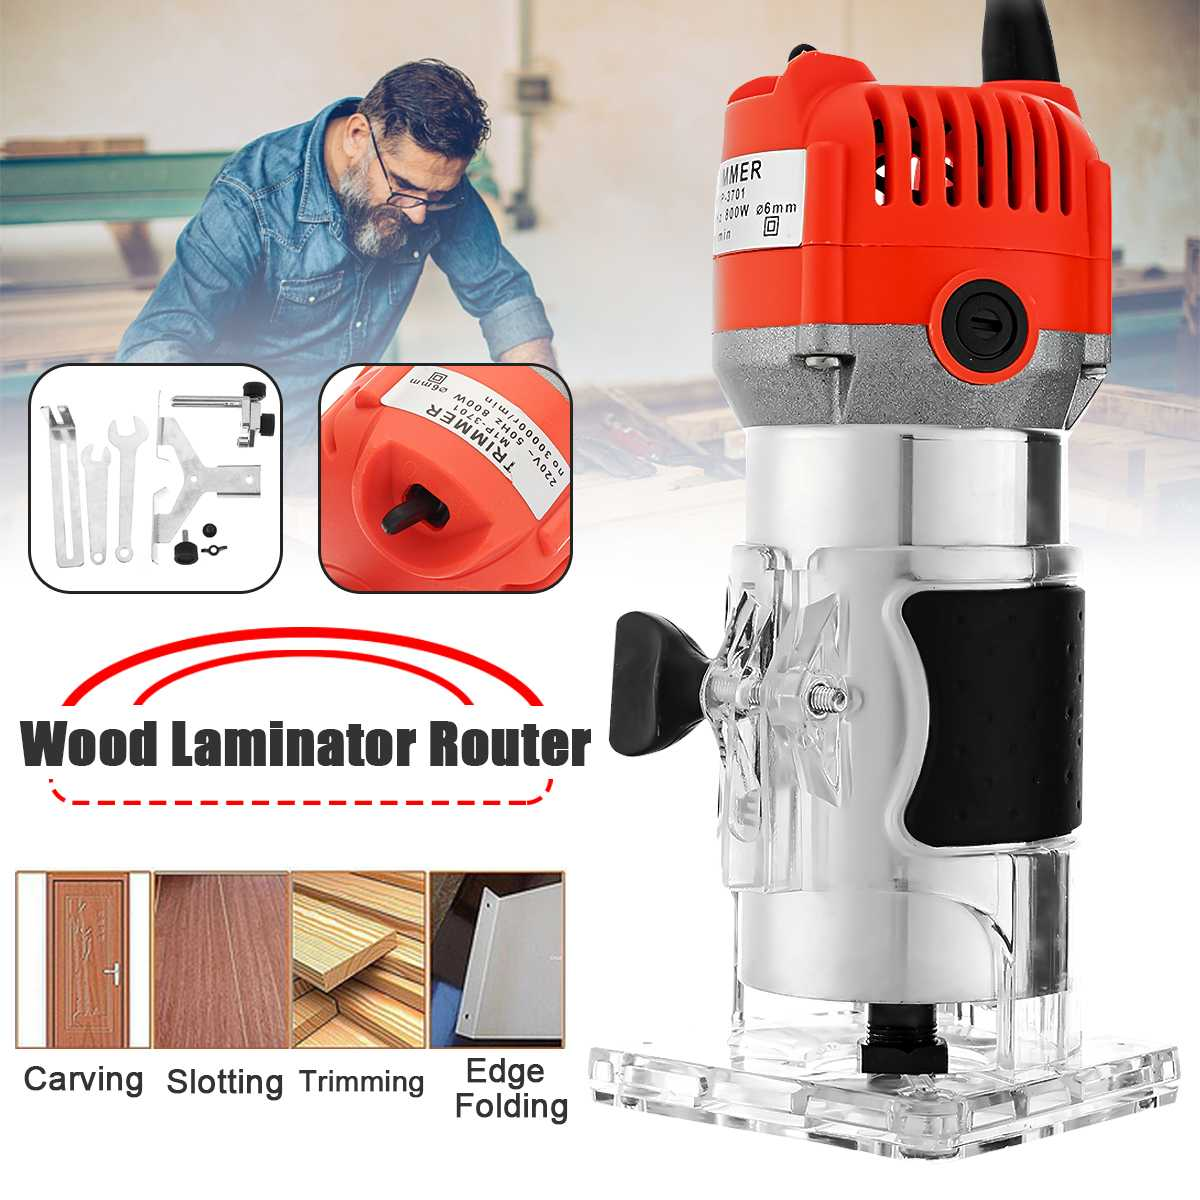 800W 30000RPM Woodworking Electric Trimmer Wood Laminate Router 6.35mm Small Copper Motor Carving Machine Woodworking DIY Tools Pakistan